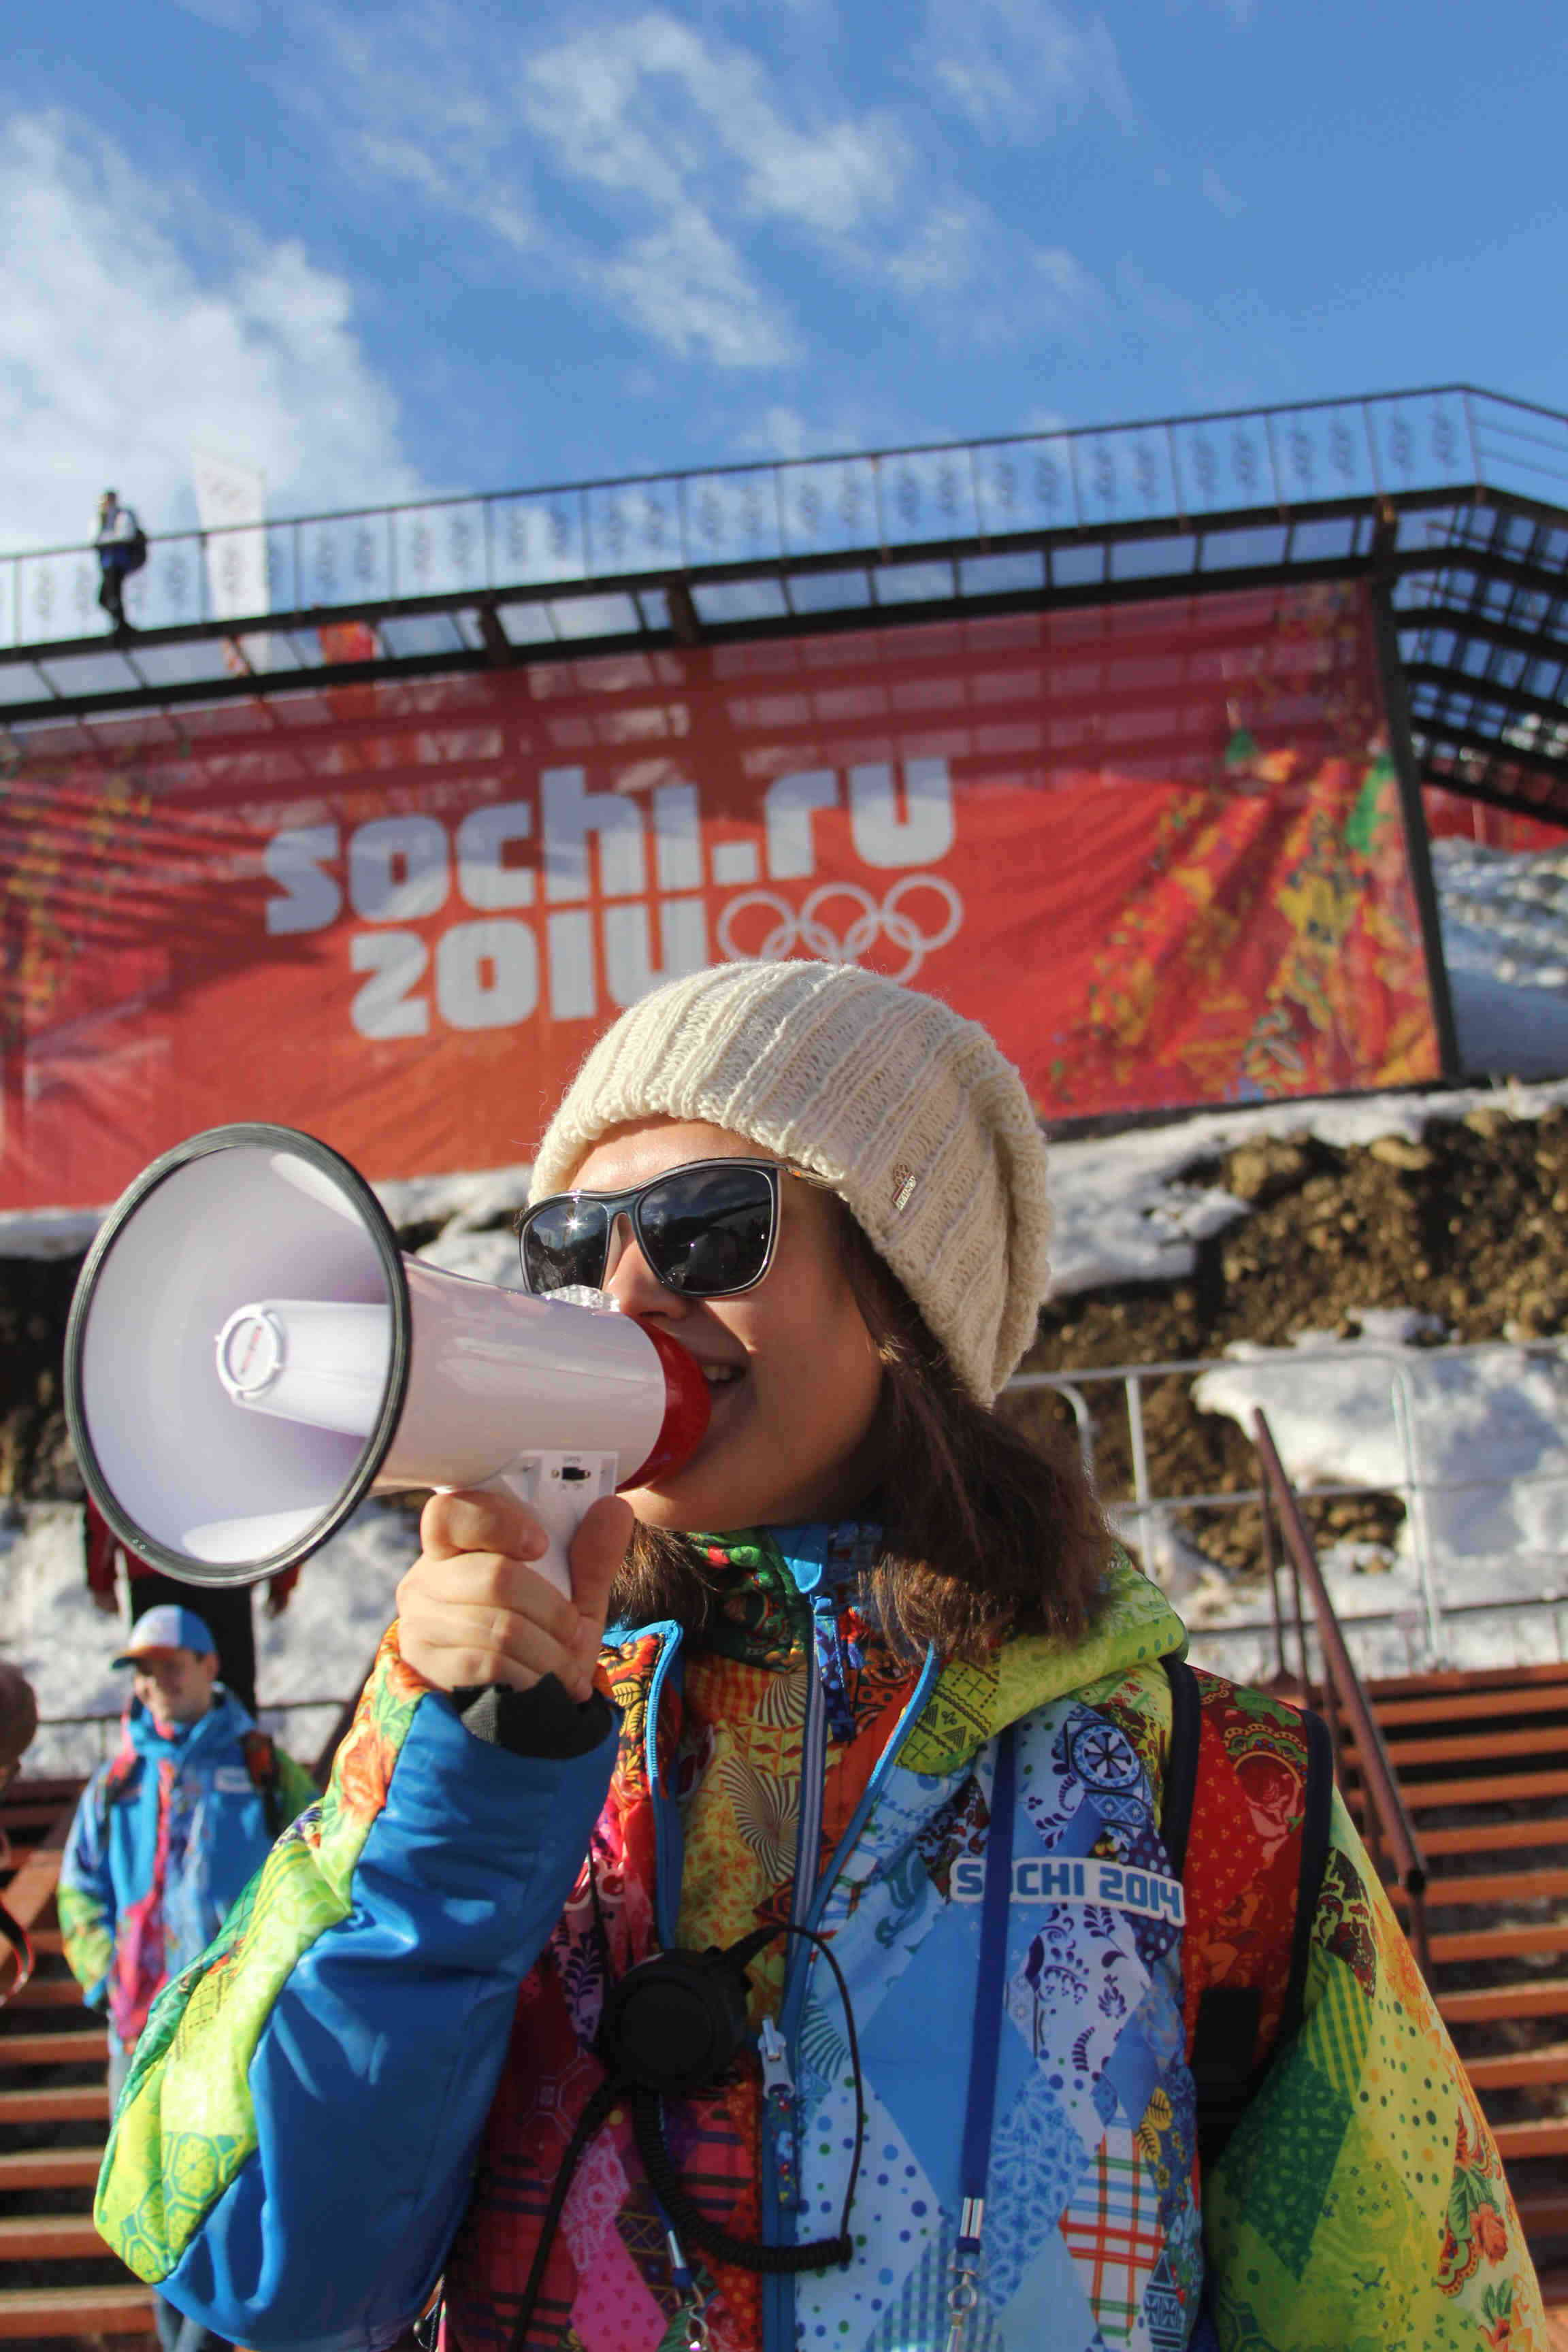 sochi 2014 volunteer